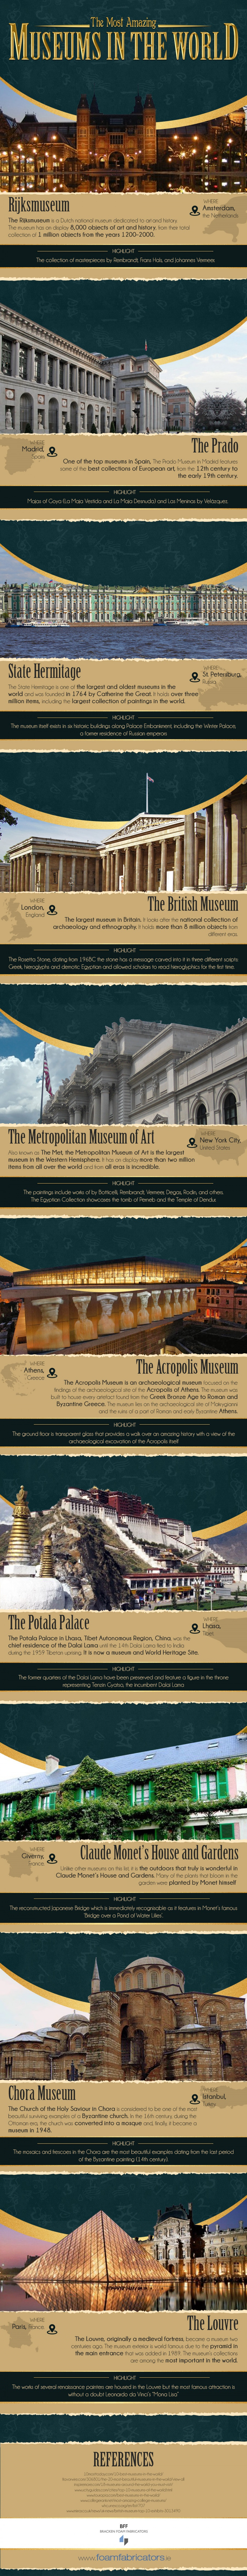 The Most Amazing Museums in the World- An Infographic Infographic